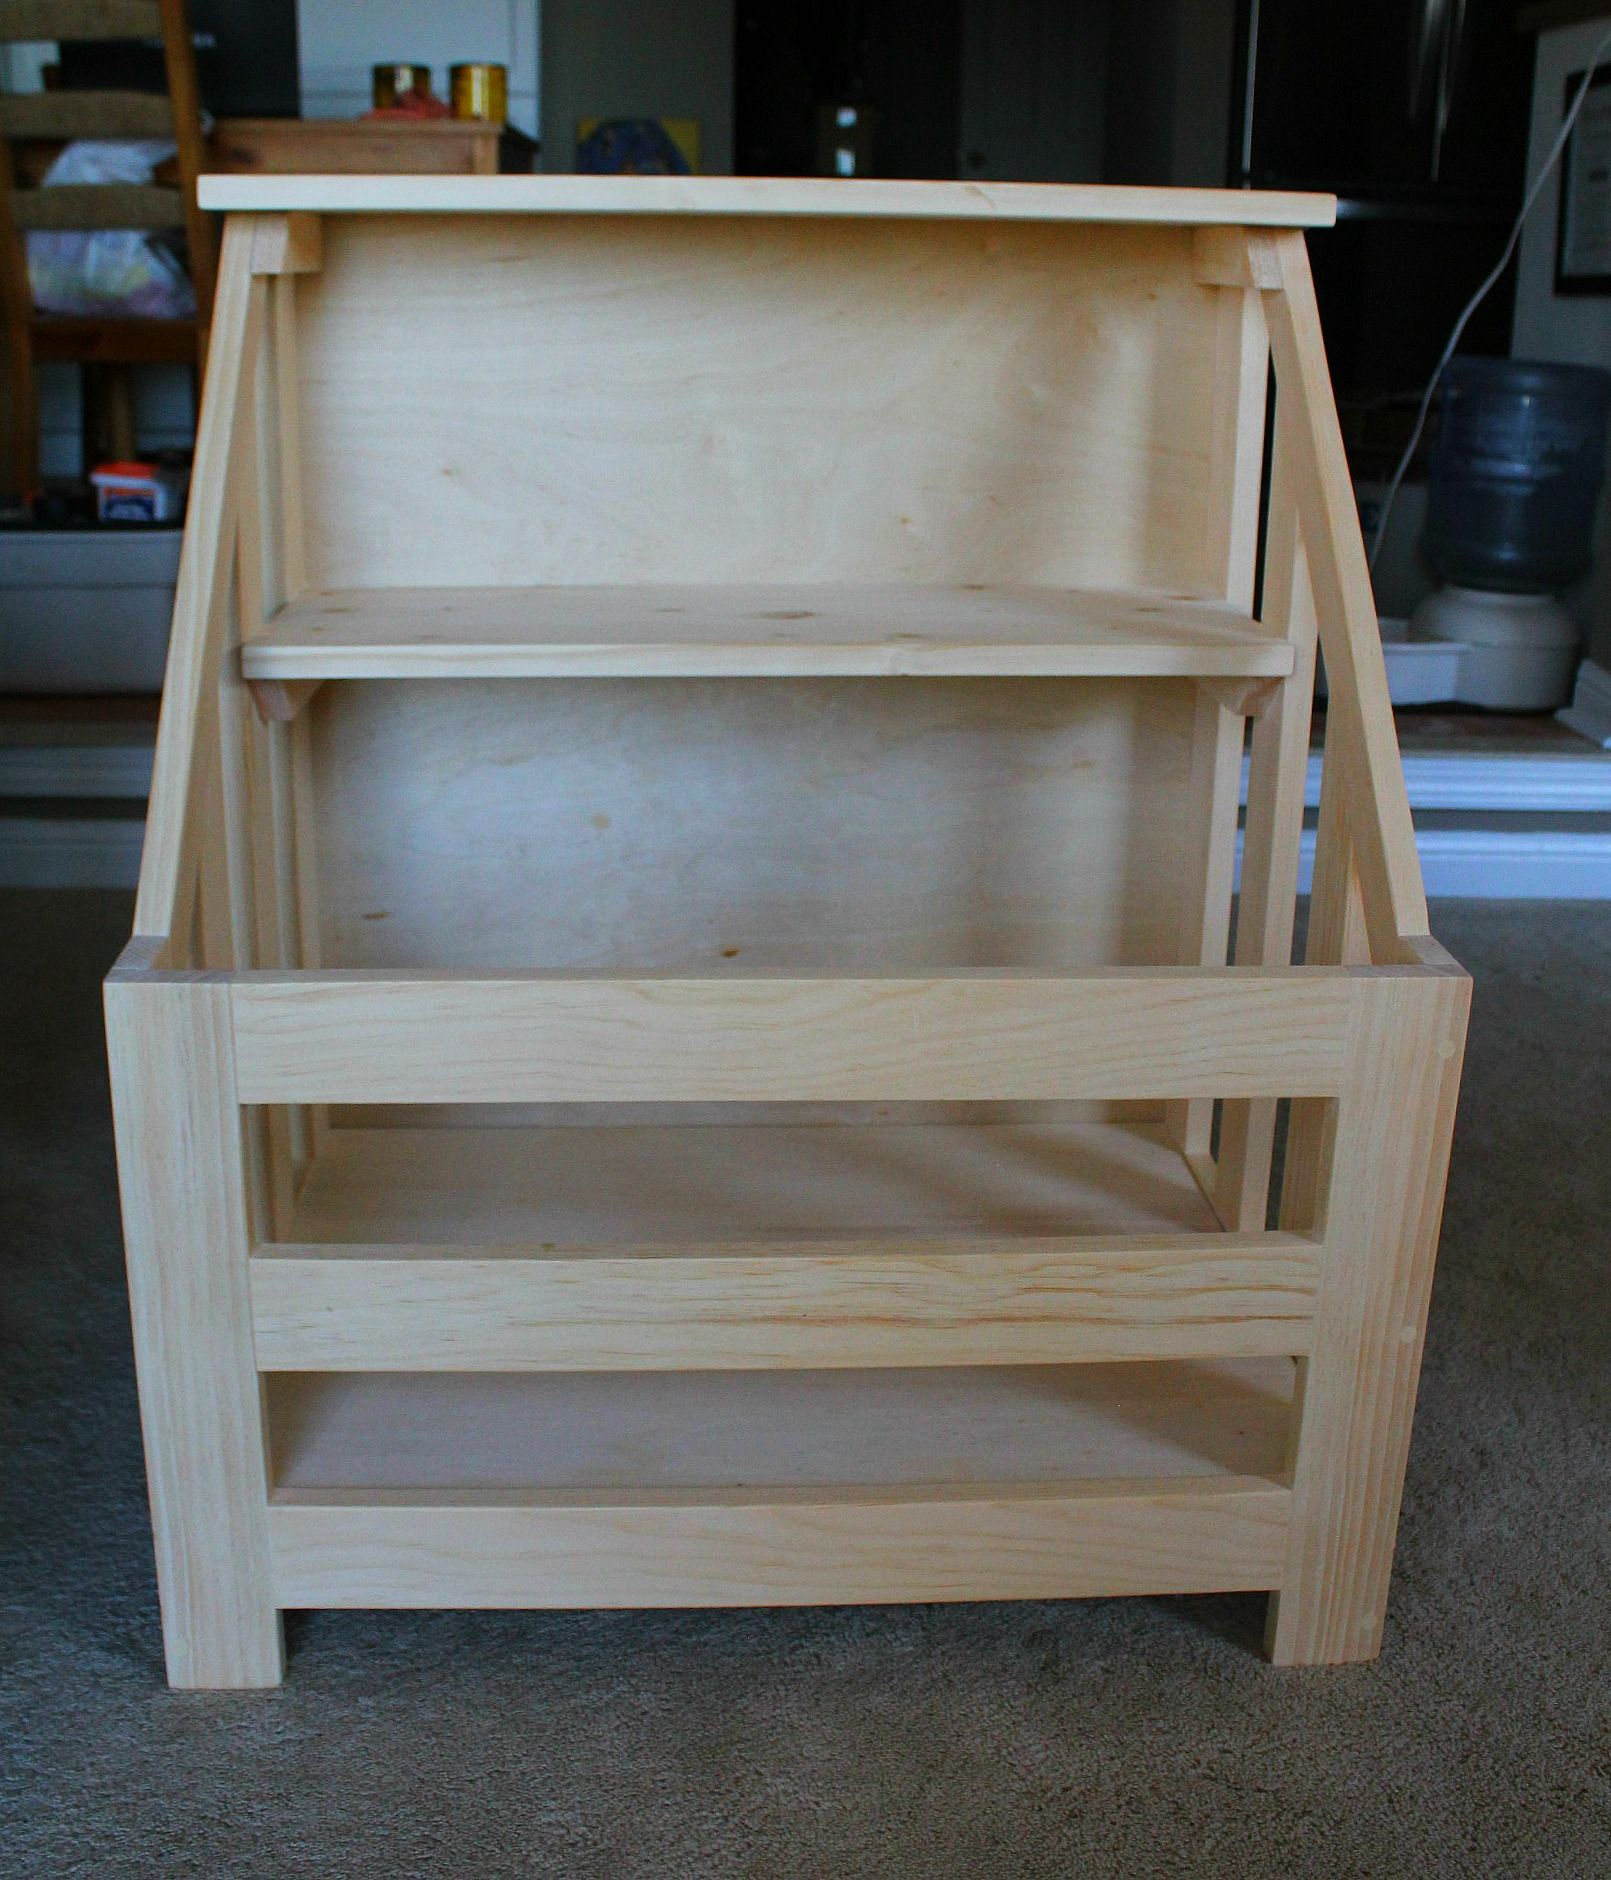 Bookshelf Toybox Combo Diy Woodworking Projects Advanced Beginner Woodworking Projects Woodworking Project Design